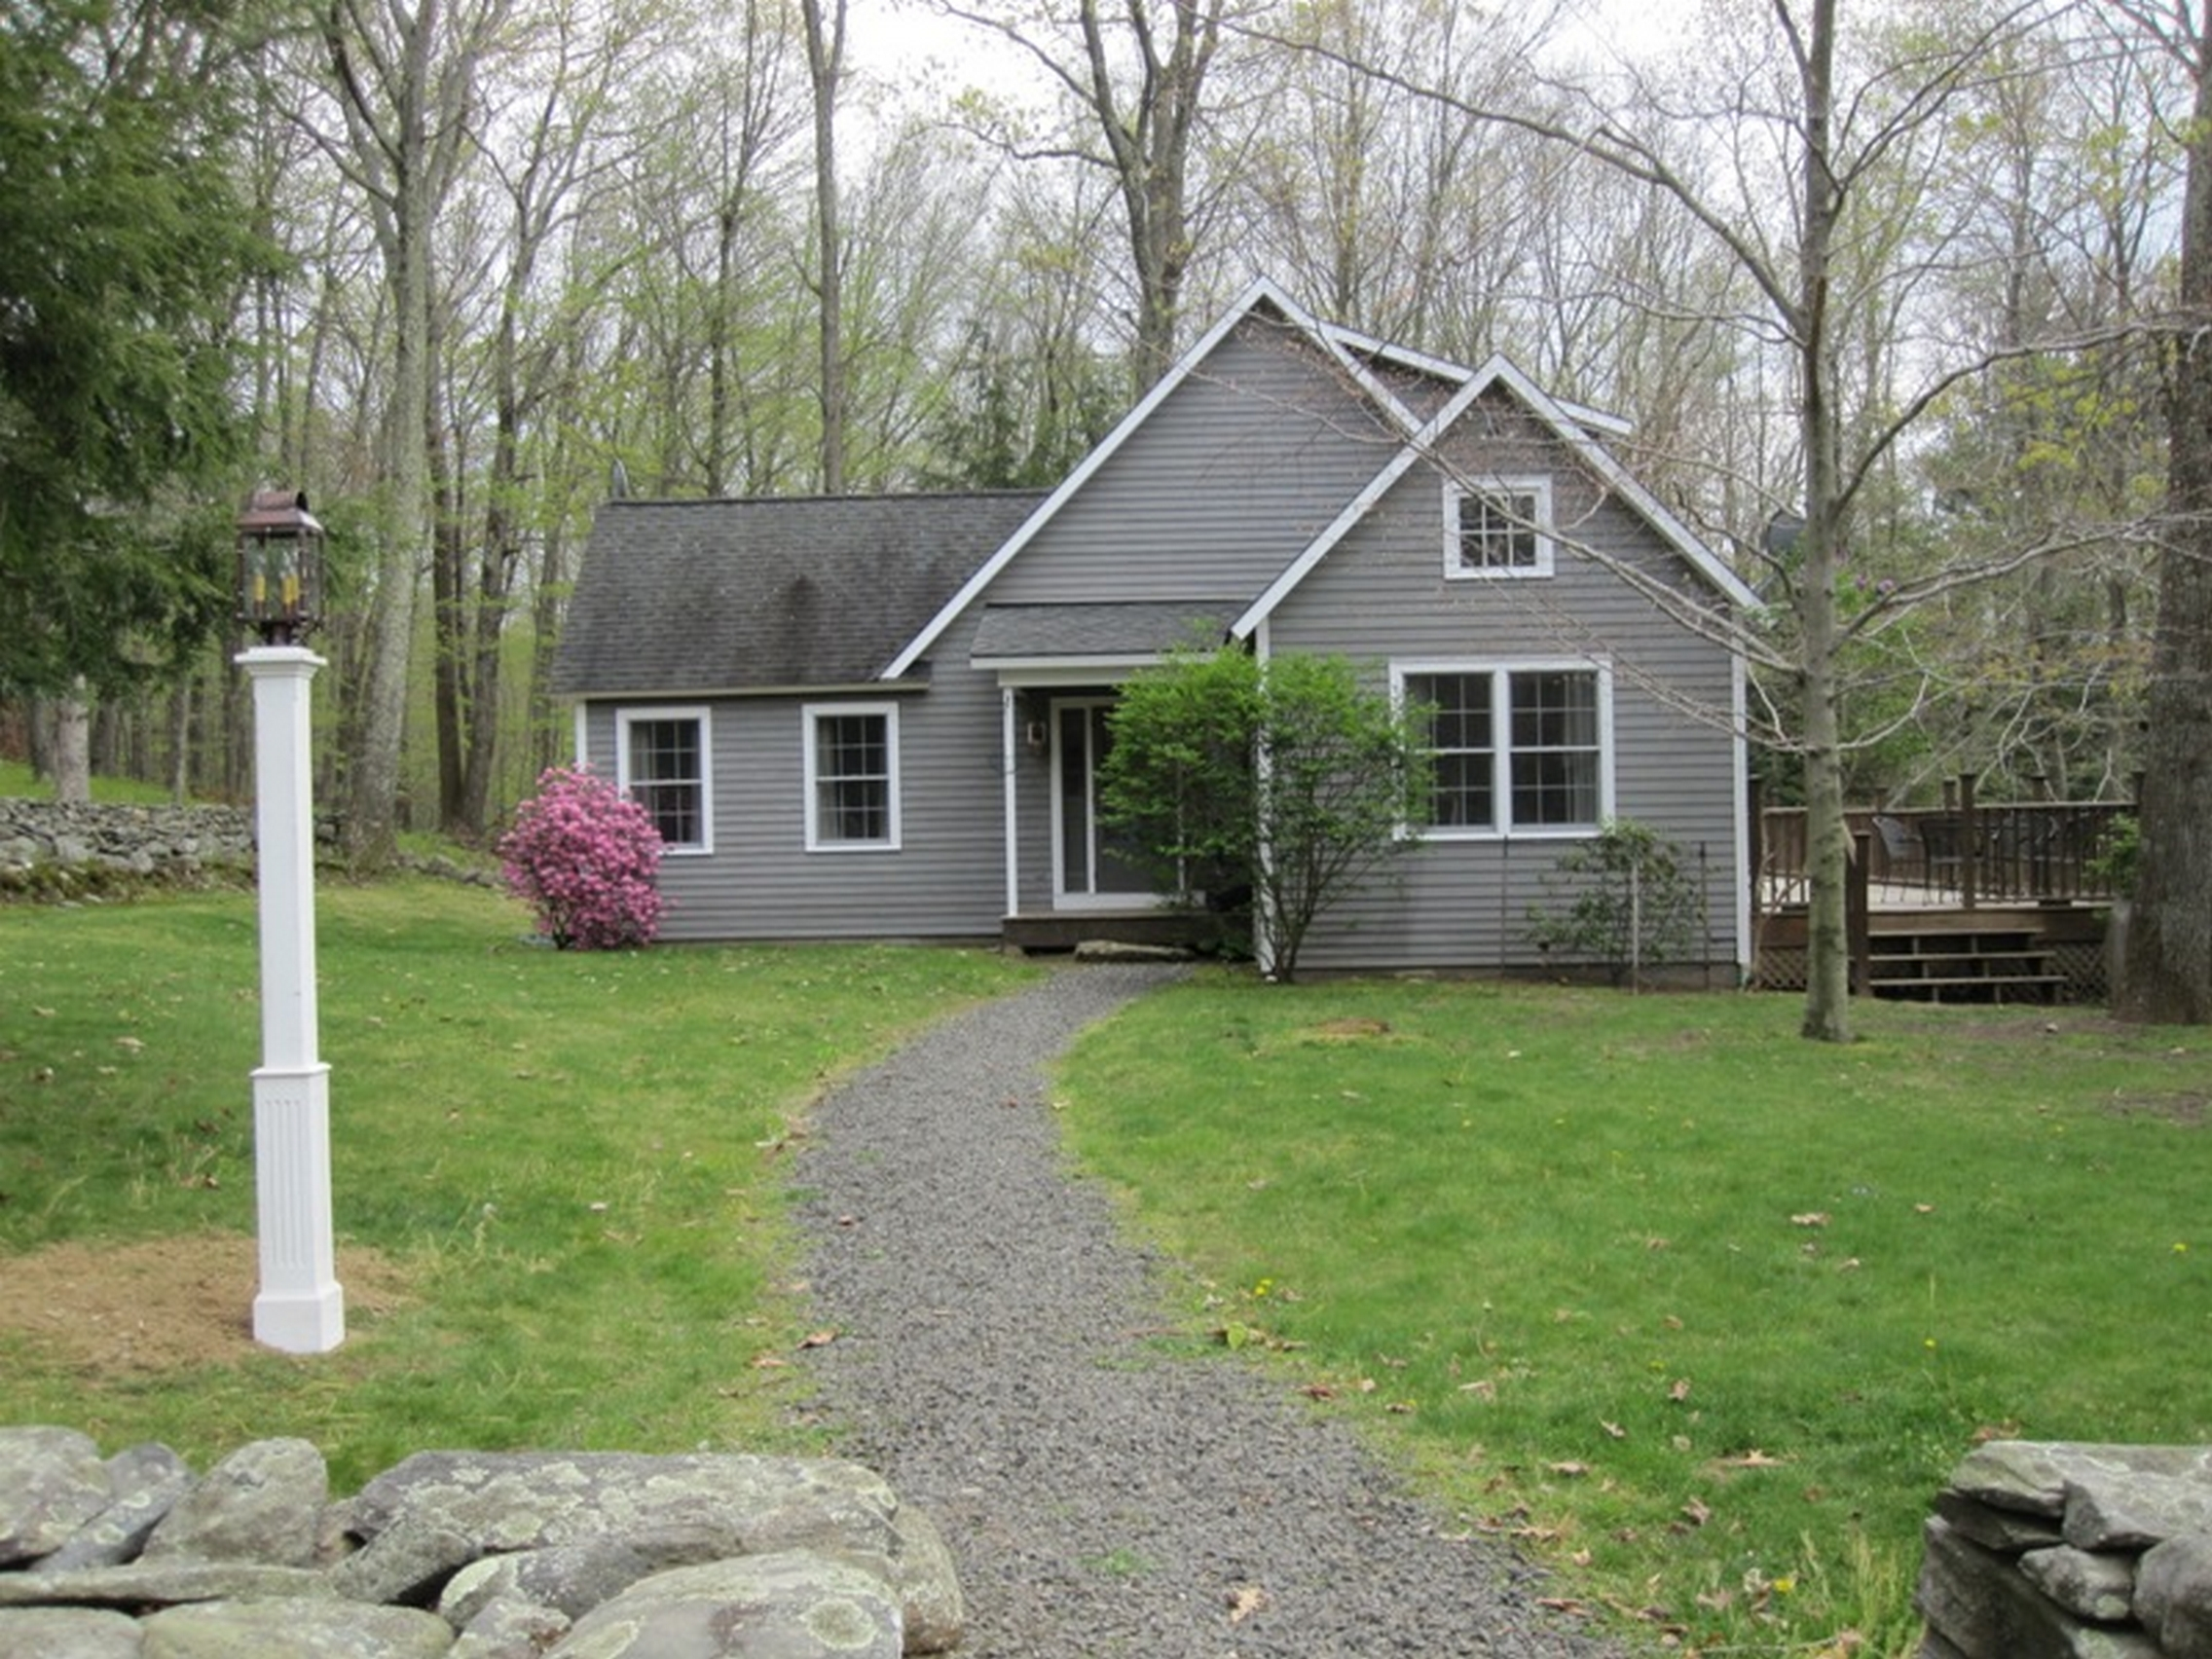 Single Family Home for Sale at High atop Coveted Nettleton Hollow 406 Nettleton Hollow Rd Washington, Connecticut, 06793 United States